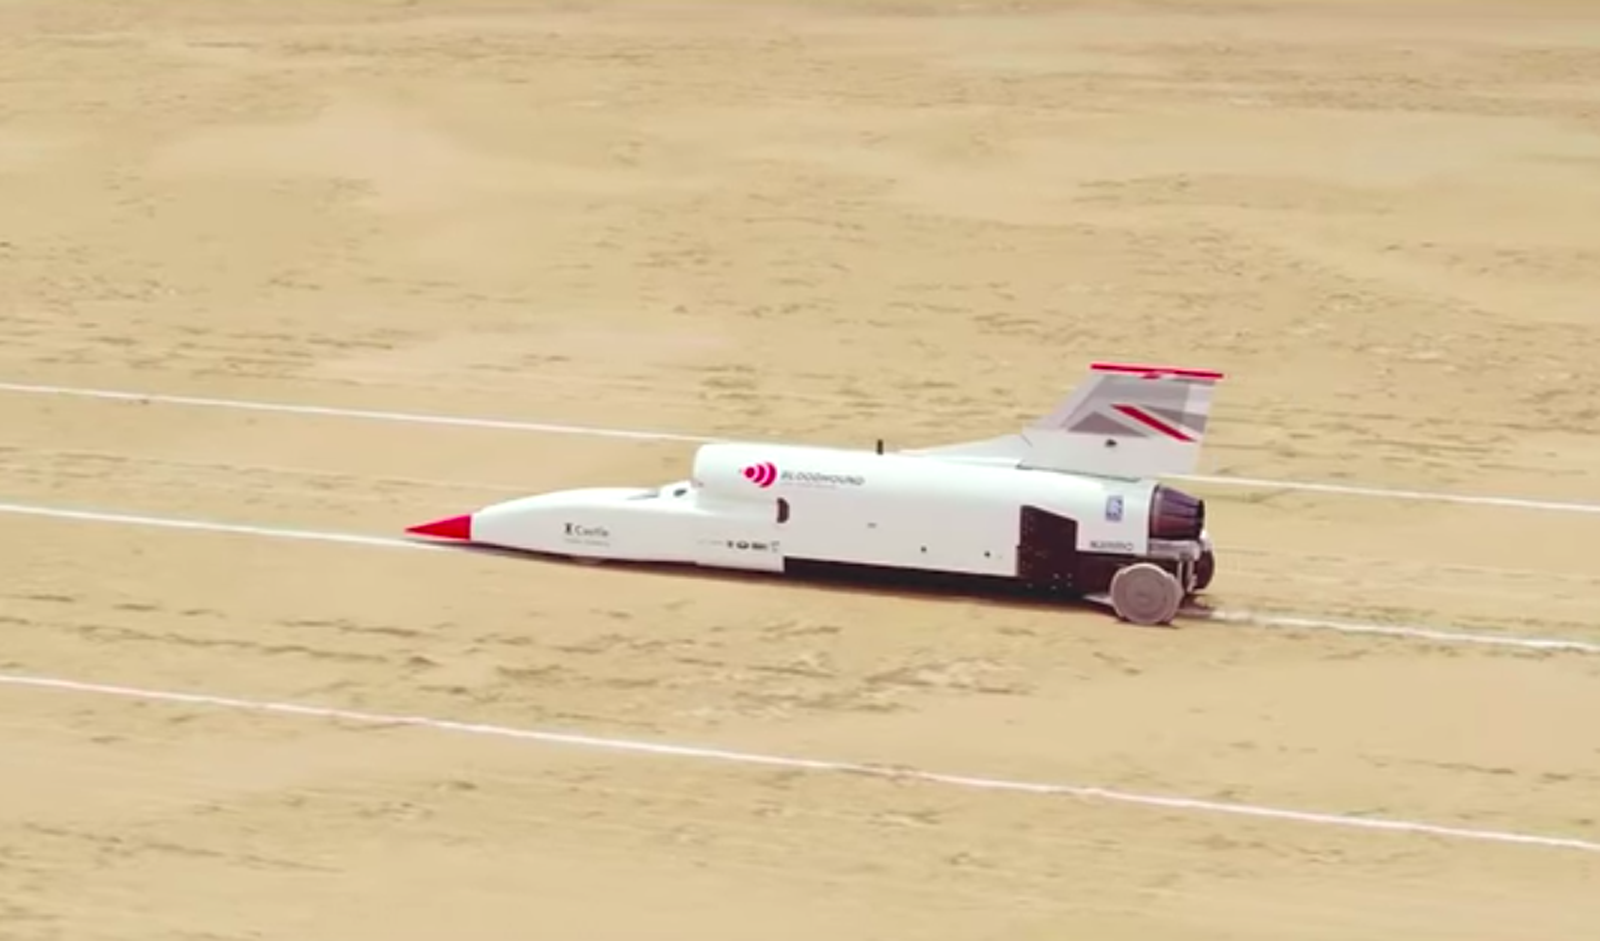 Bloodhound land speed record car tops 500mph